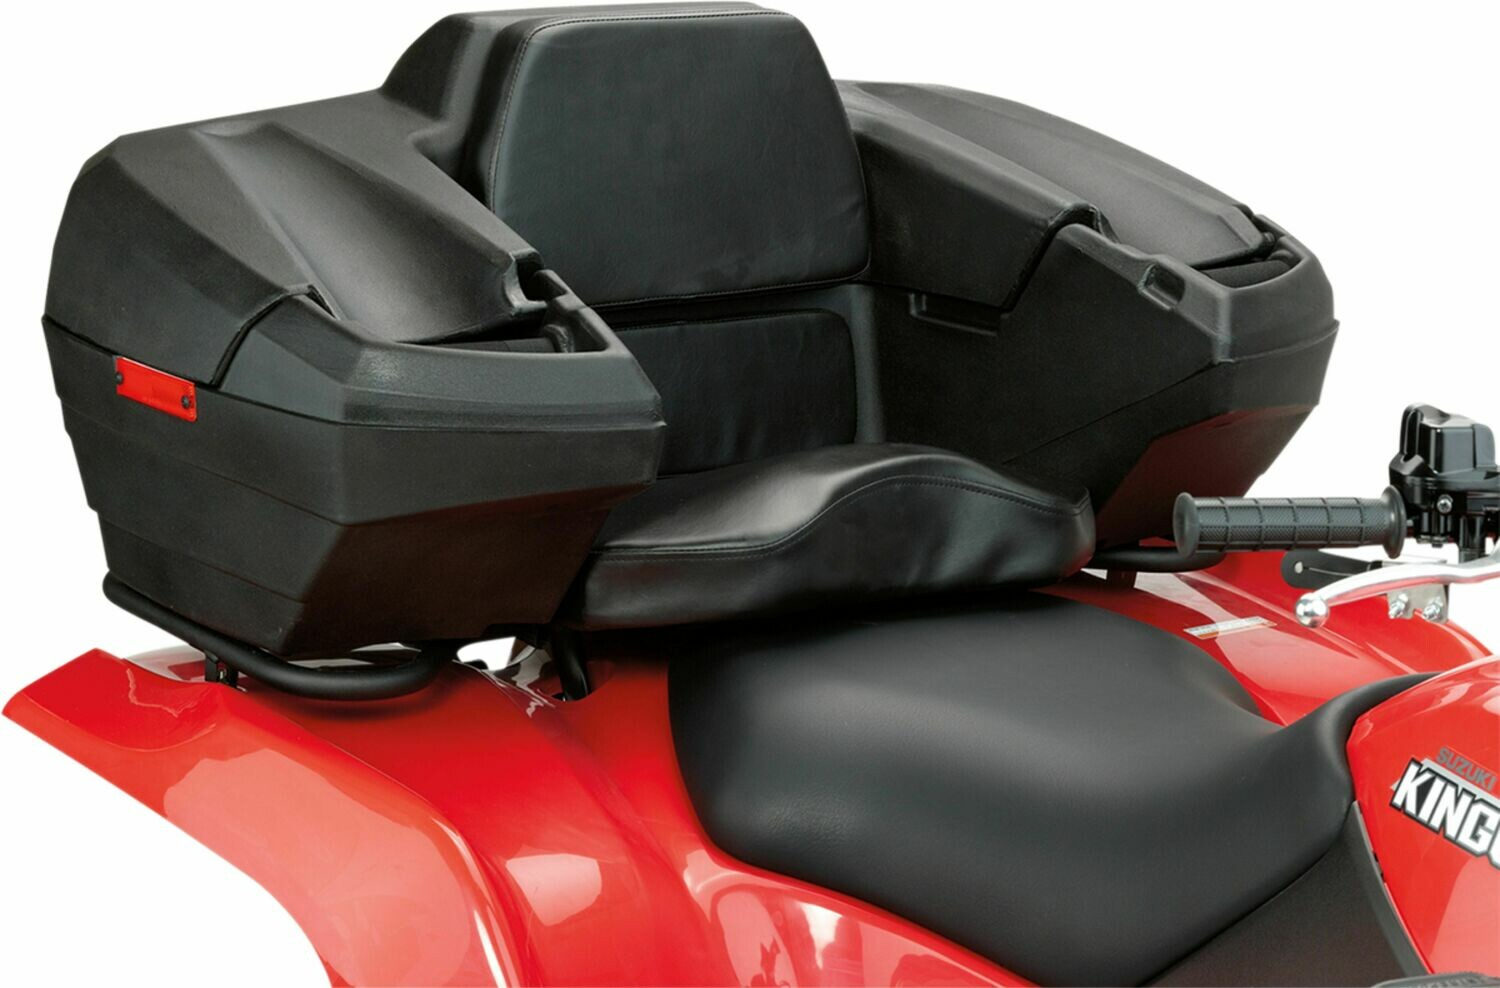 Moose ATV Trailblazer Rear Seat Storage Trunk Box (3505-0120)